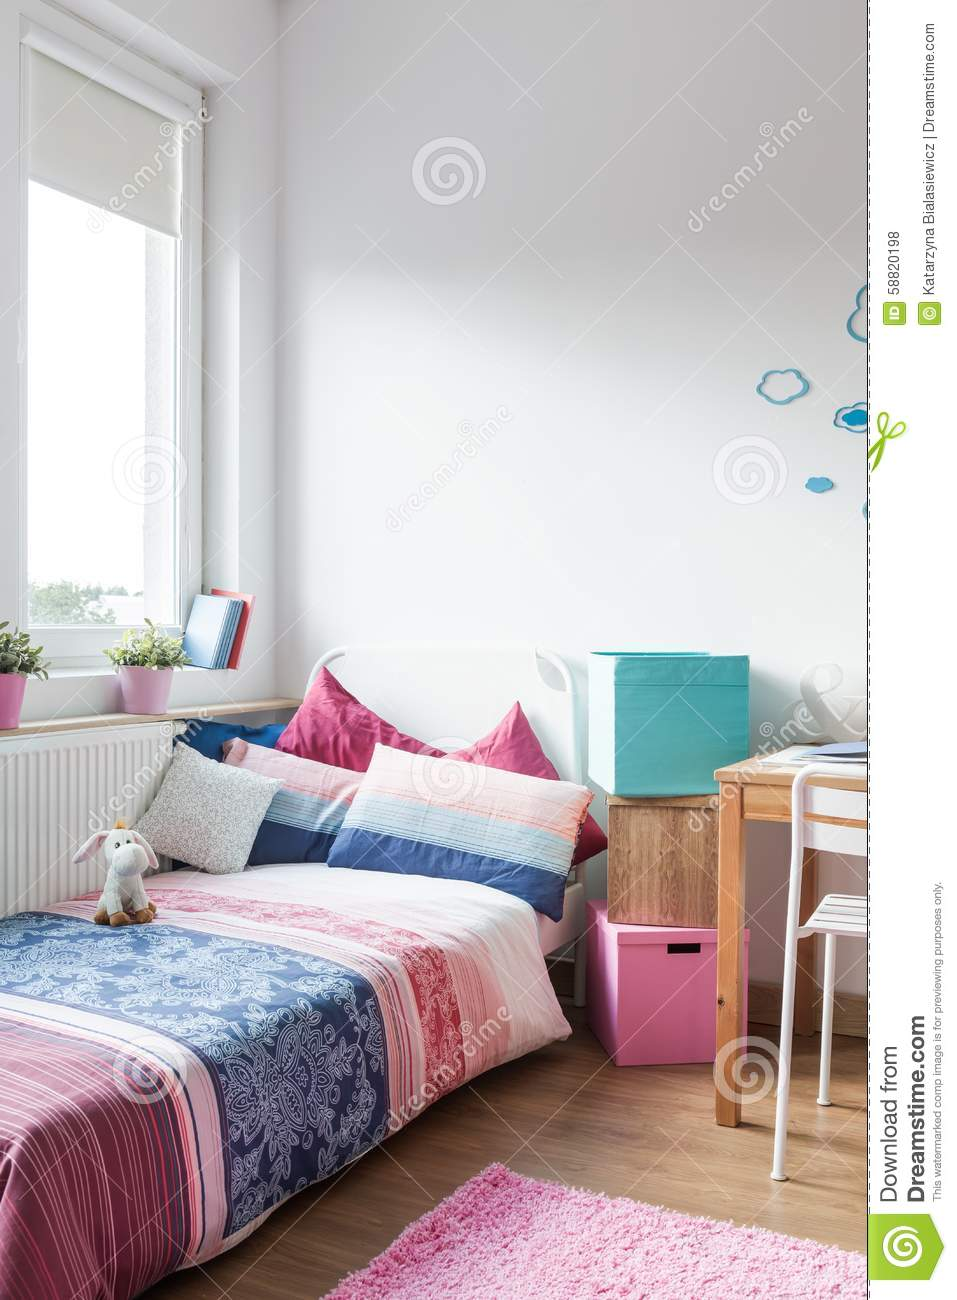 Teen Girl Room Stock Photo Image 58820198